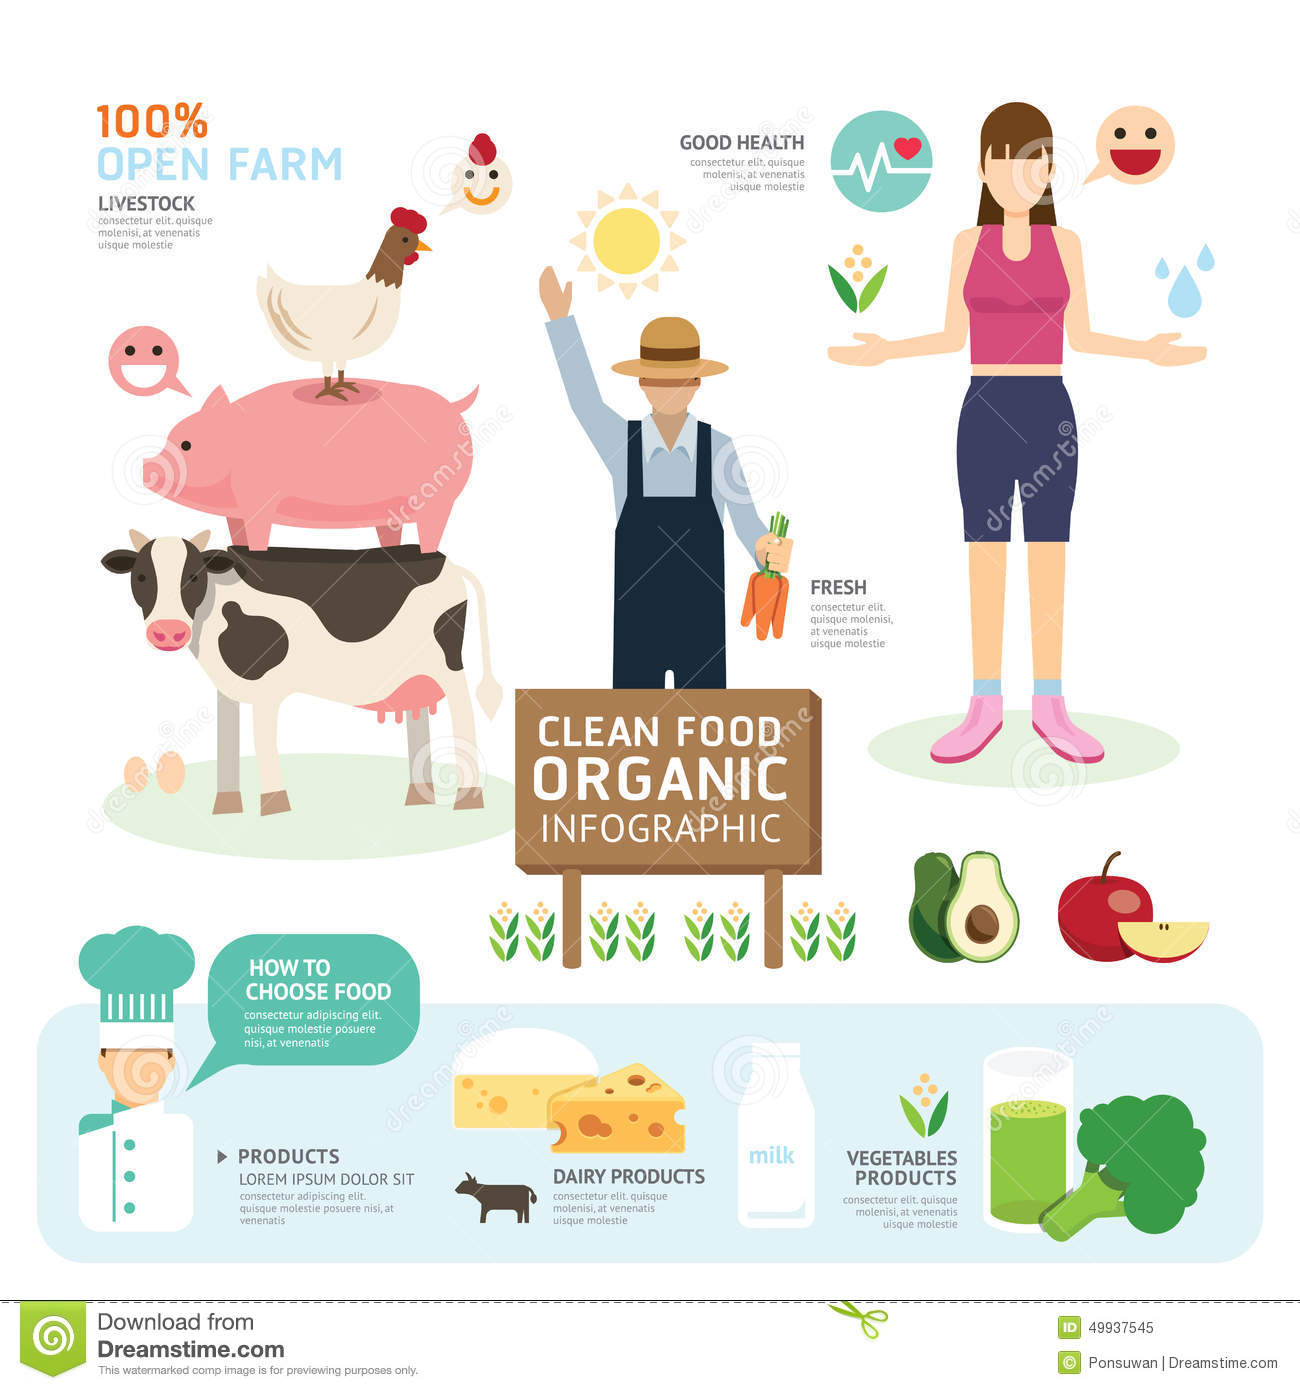 Food and good health - Royalty Free Vector Download Organic Clean Foods Good Health